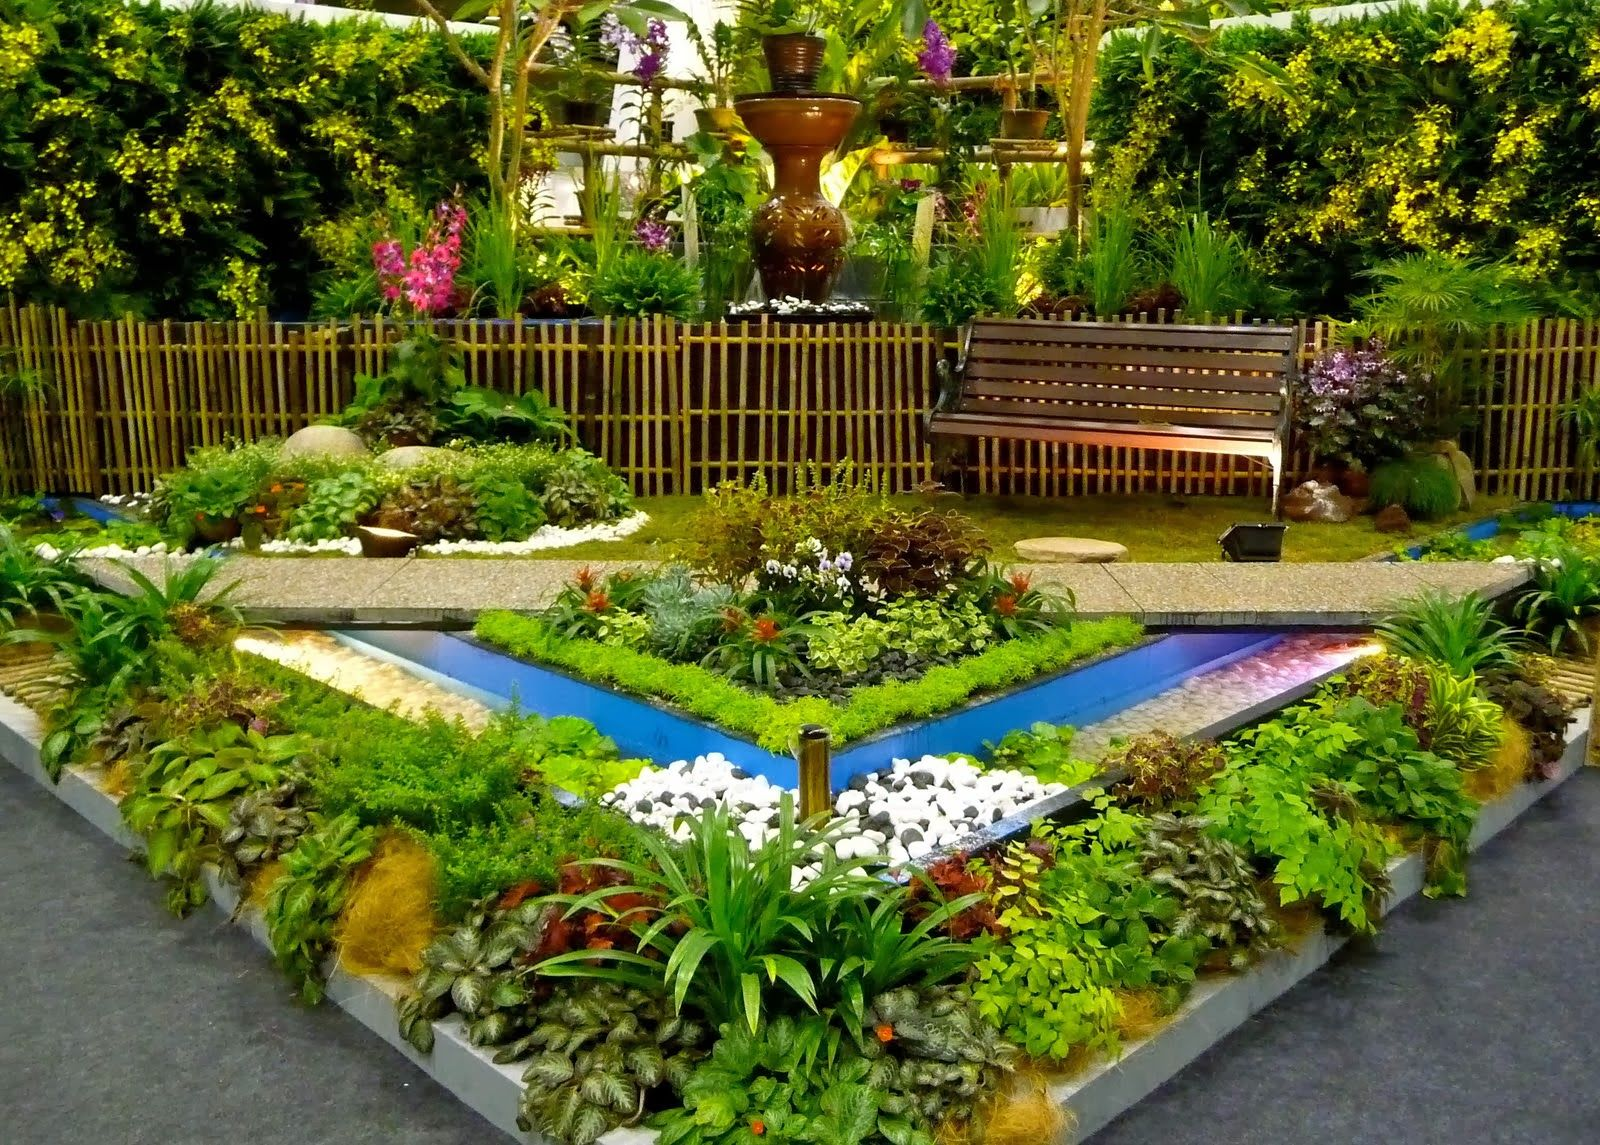 Best landscaping ideas i have ever seen wow design for Small flower garden in front of house